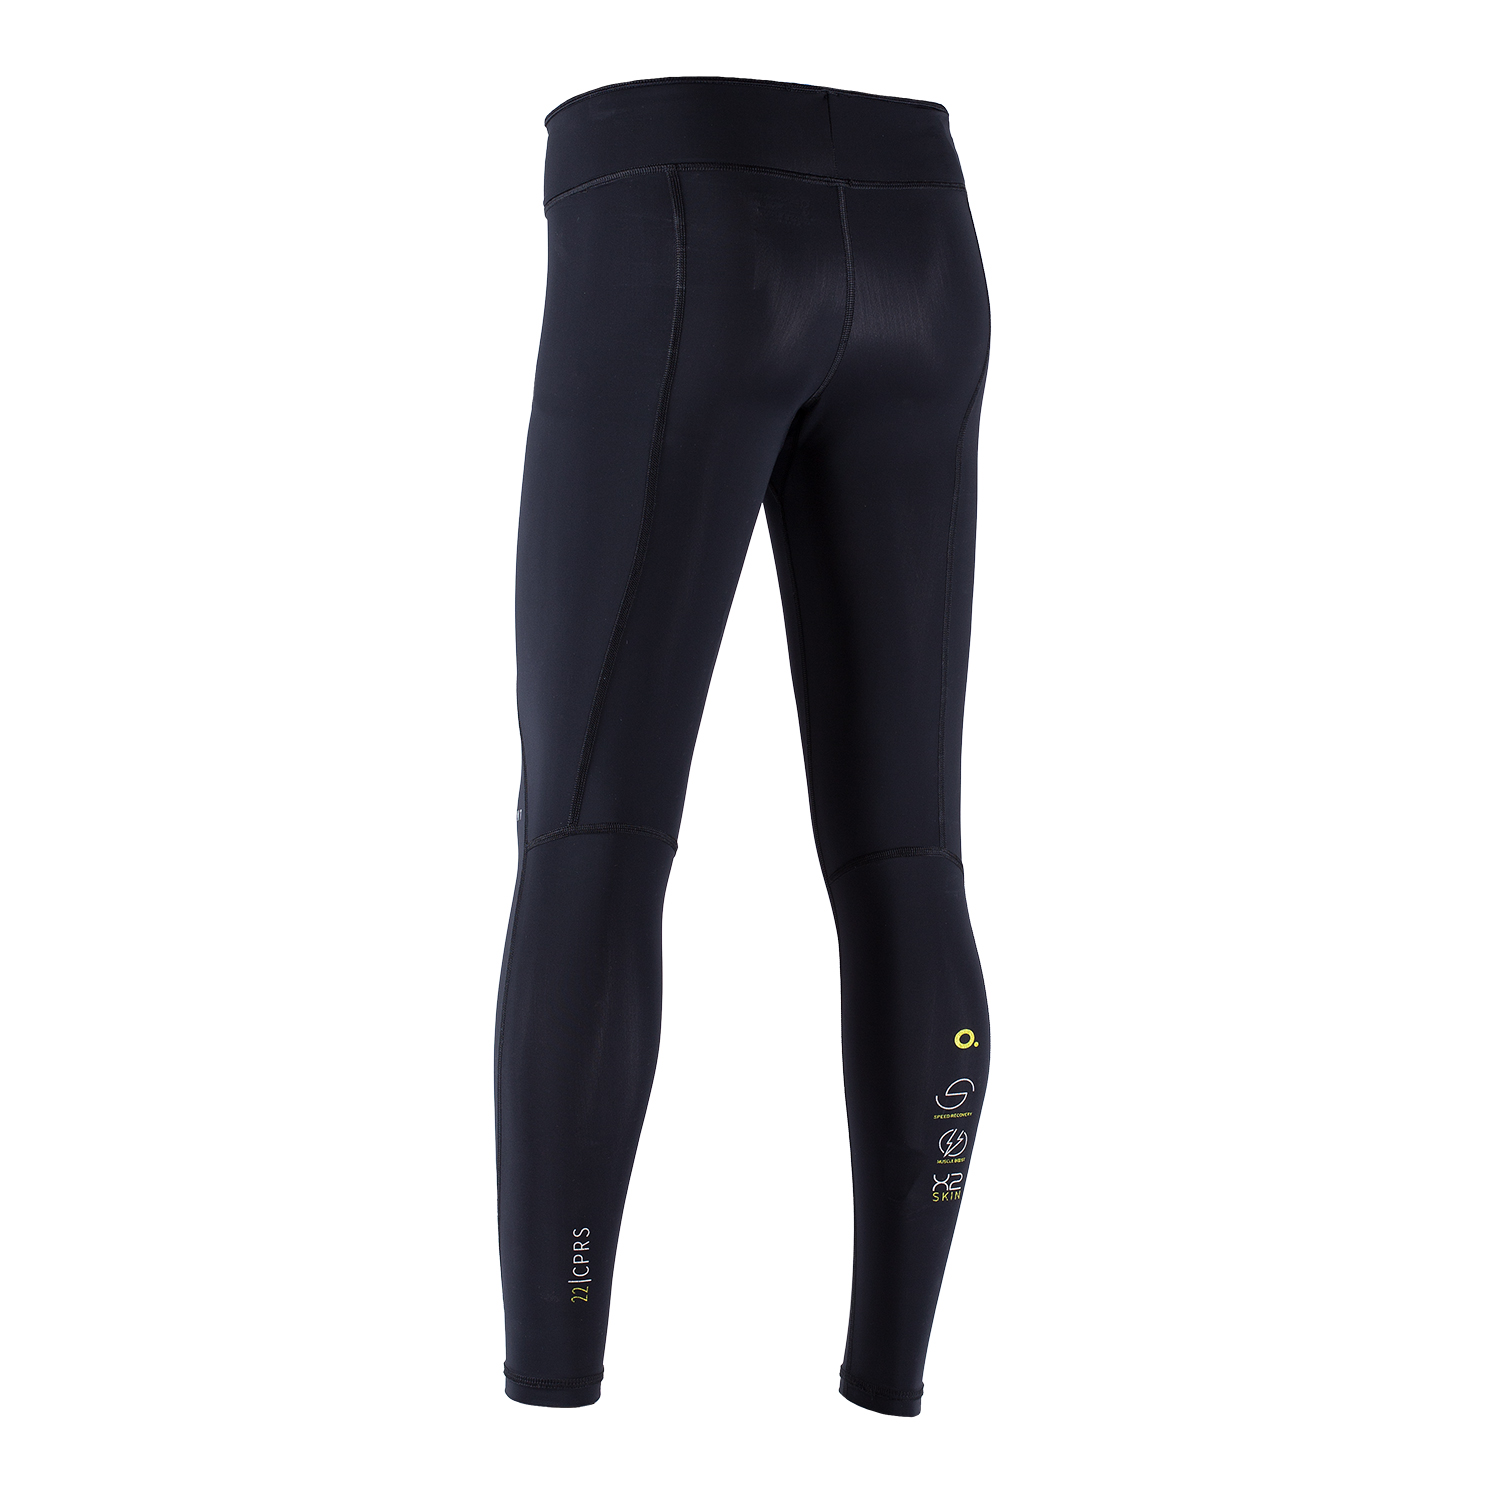 Athletic Compression Tights 2.0 / Women